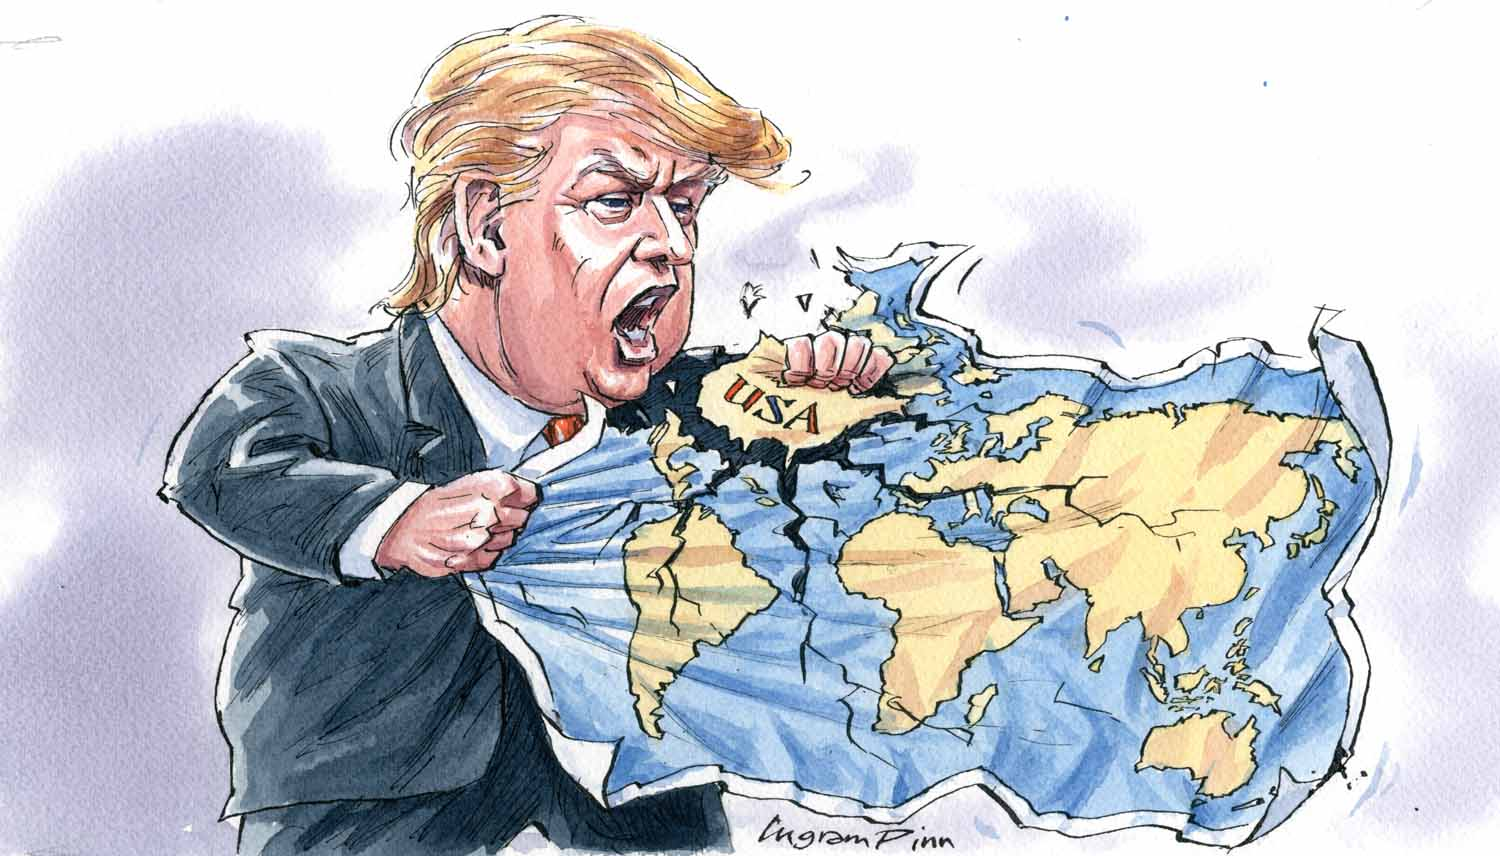 Illustrationcupboard meet ingram pinn political cartoonist for the sadly for the world the worse things get the more there is to make fun of although these surreal times often seem beyond satire gumiabroncs Choice Image